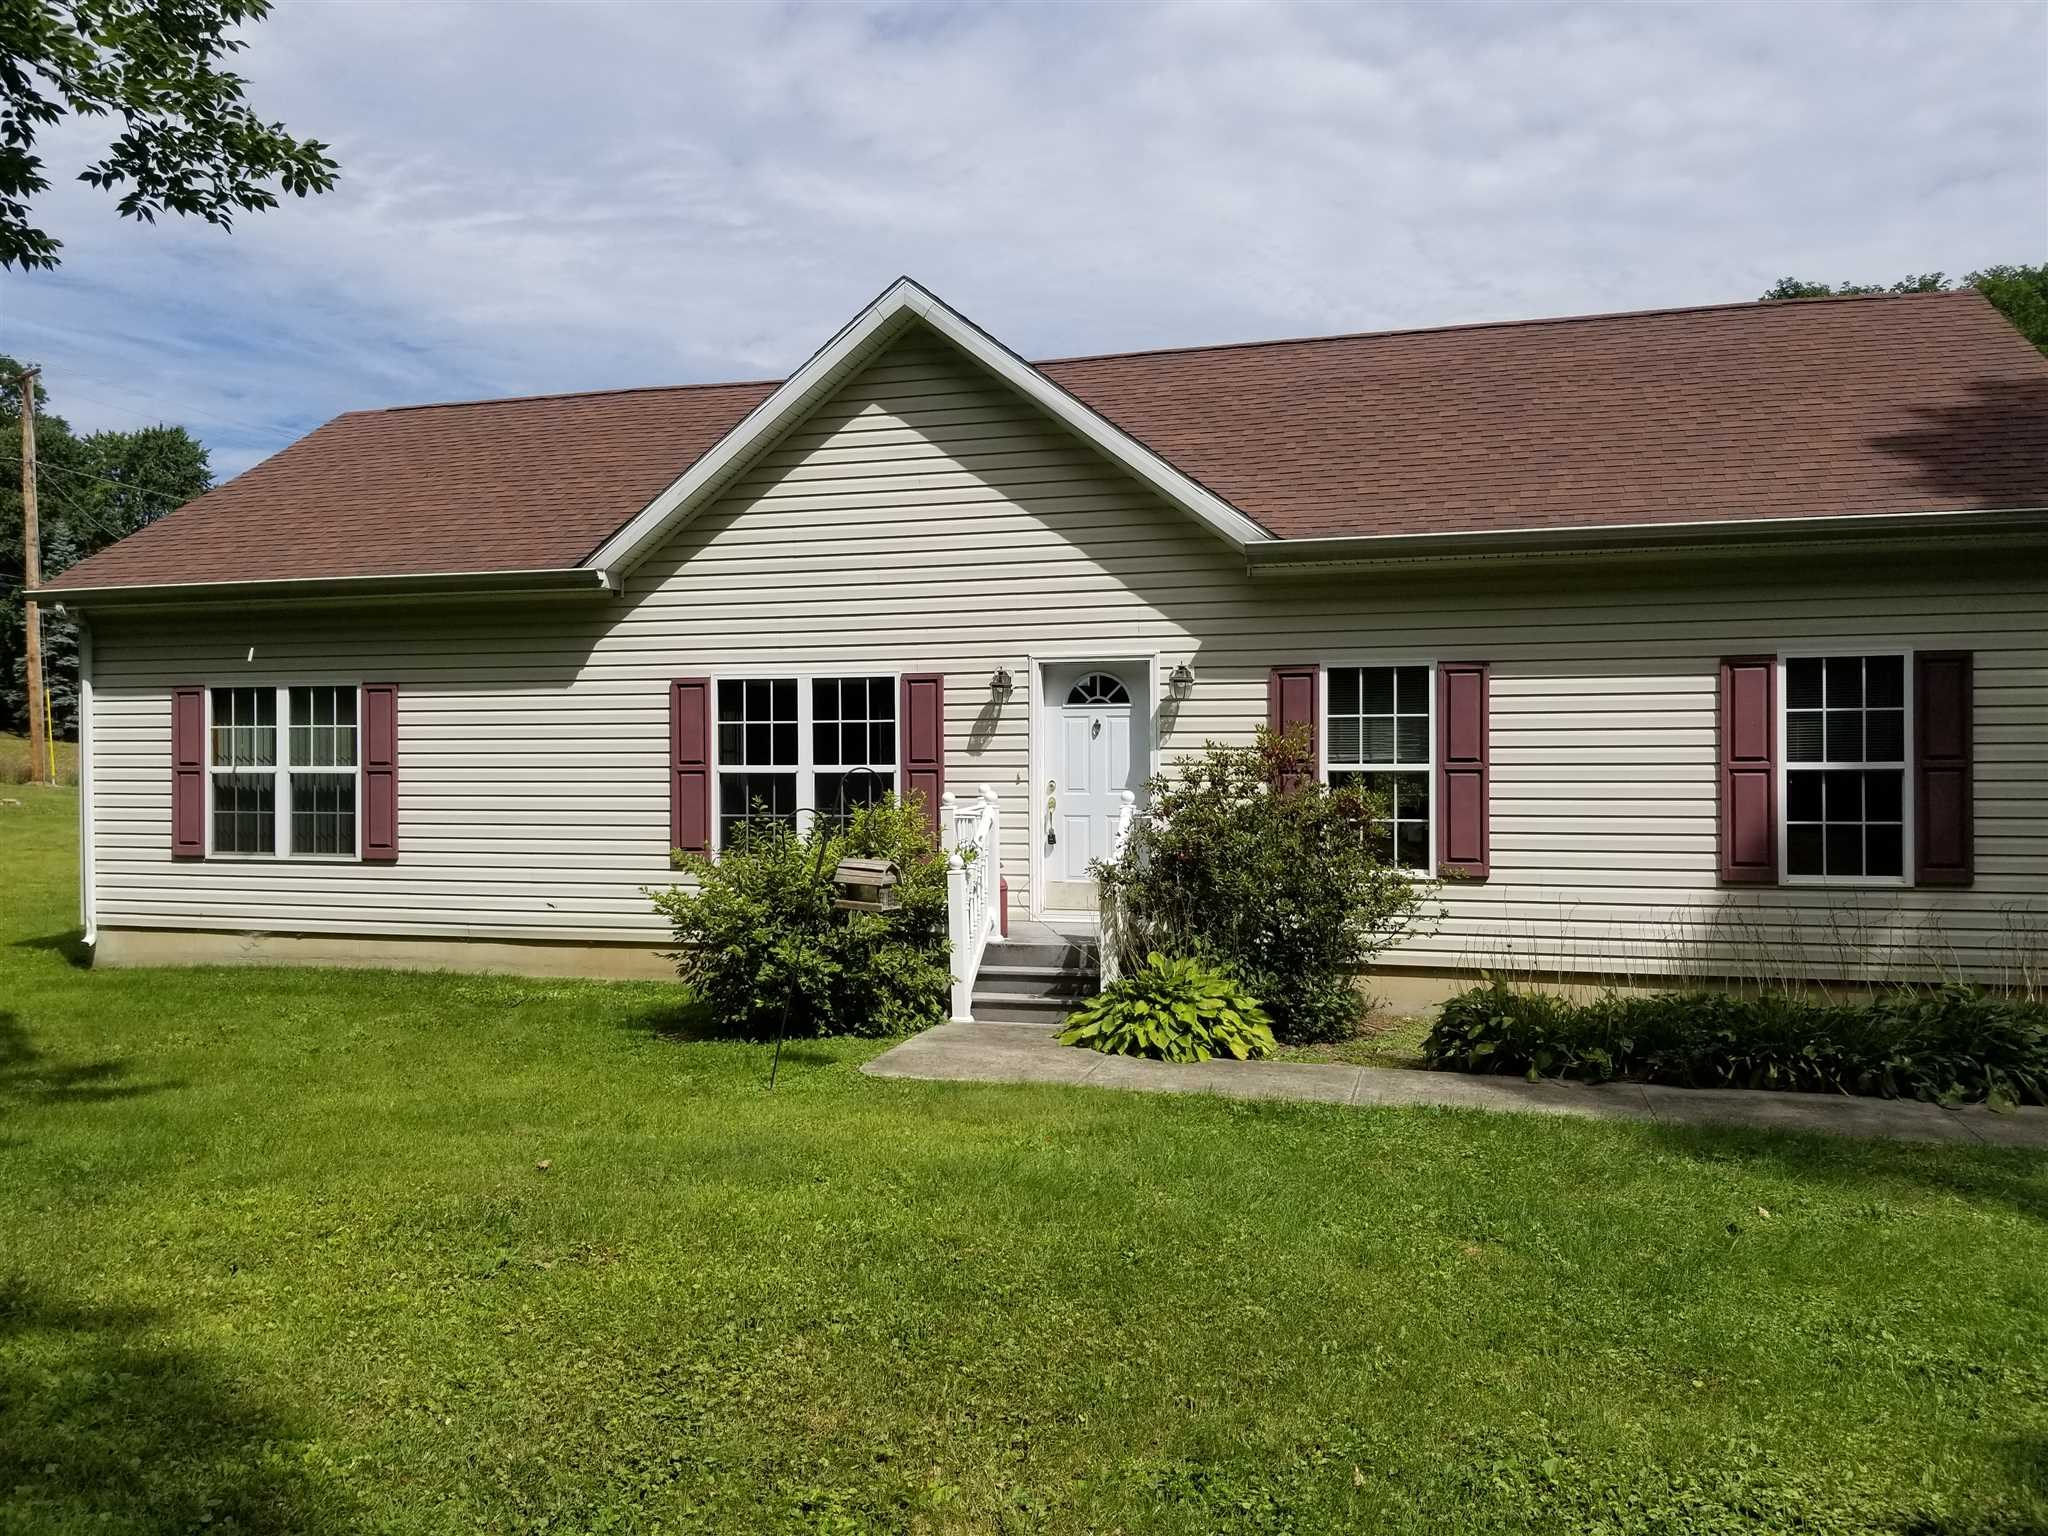 Single Family Home for Sale at 7 WHITE SCHOOLHOUSE Road 7 WHITE SCHOOLHOUSE Road Rhinebeck, New York 12572 United States